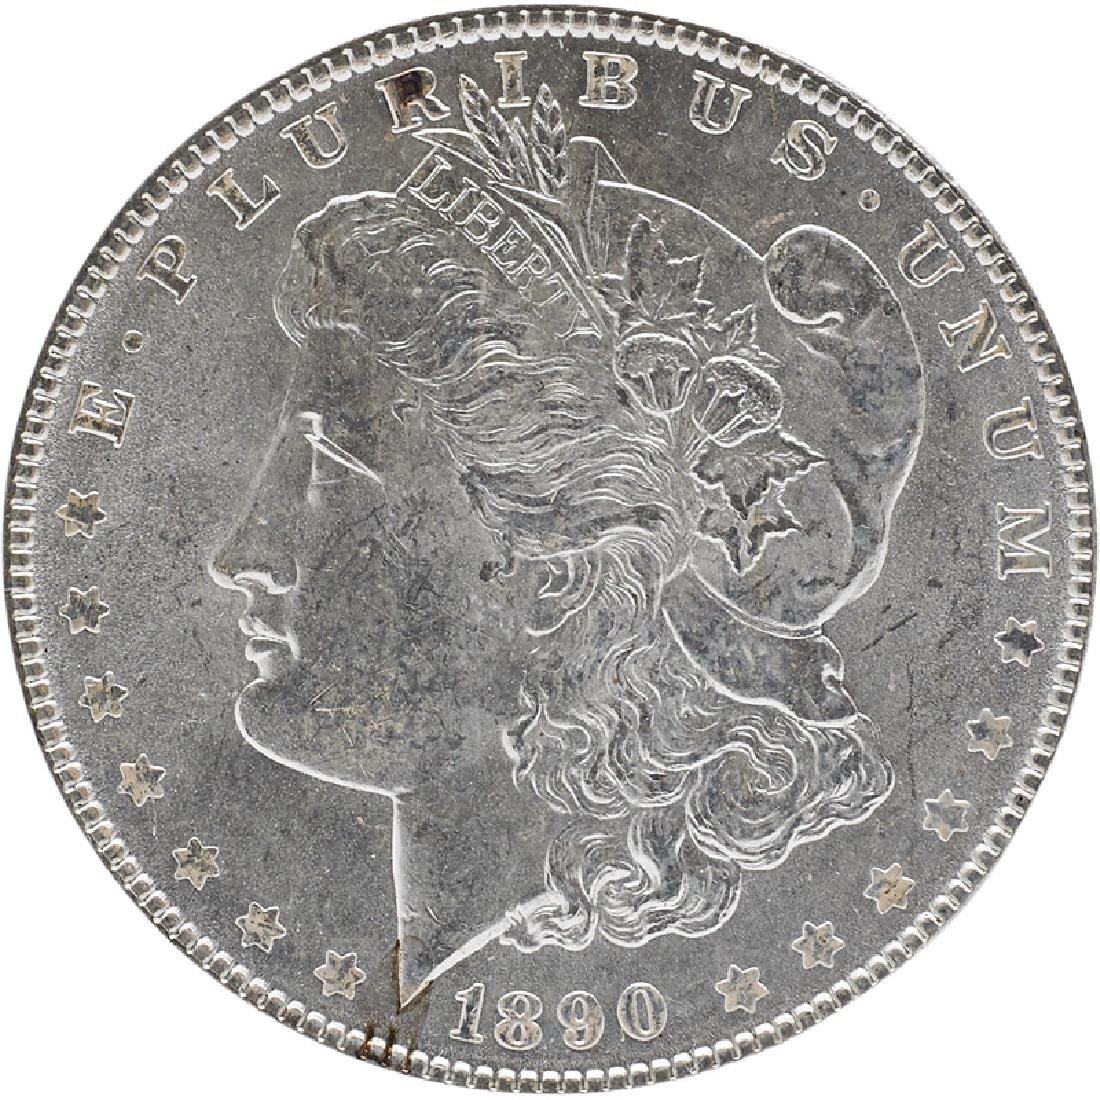 U.S. 1890 MORGAN $1 COIN